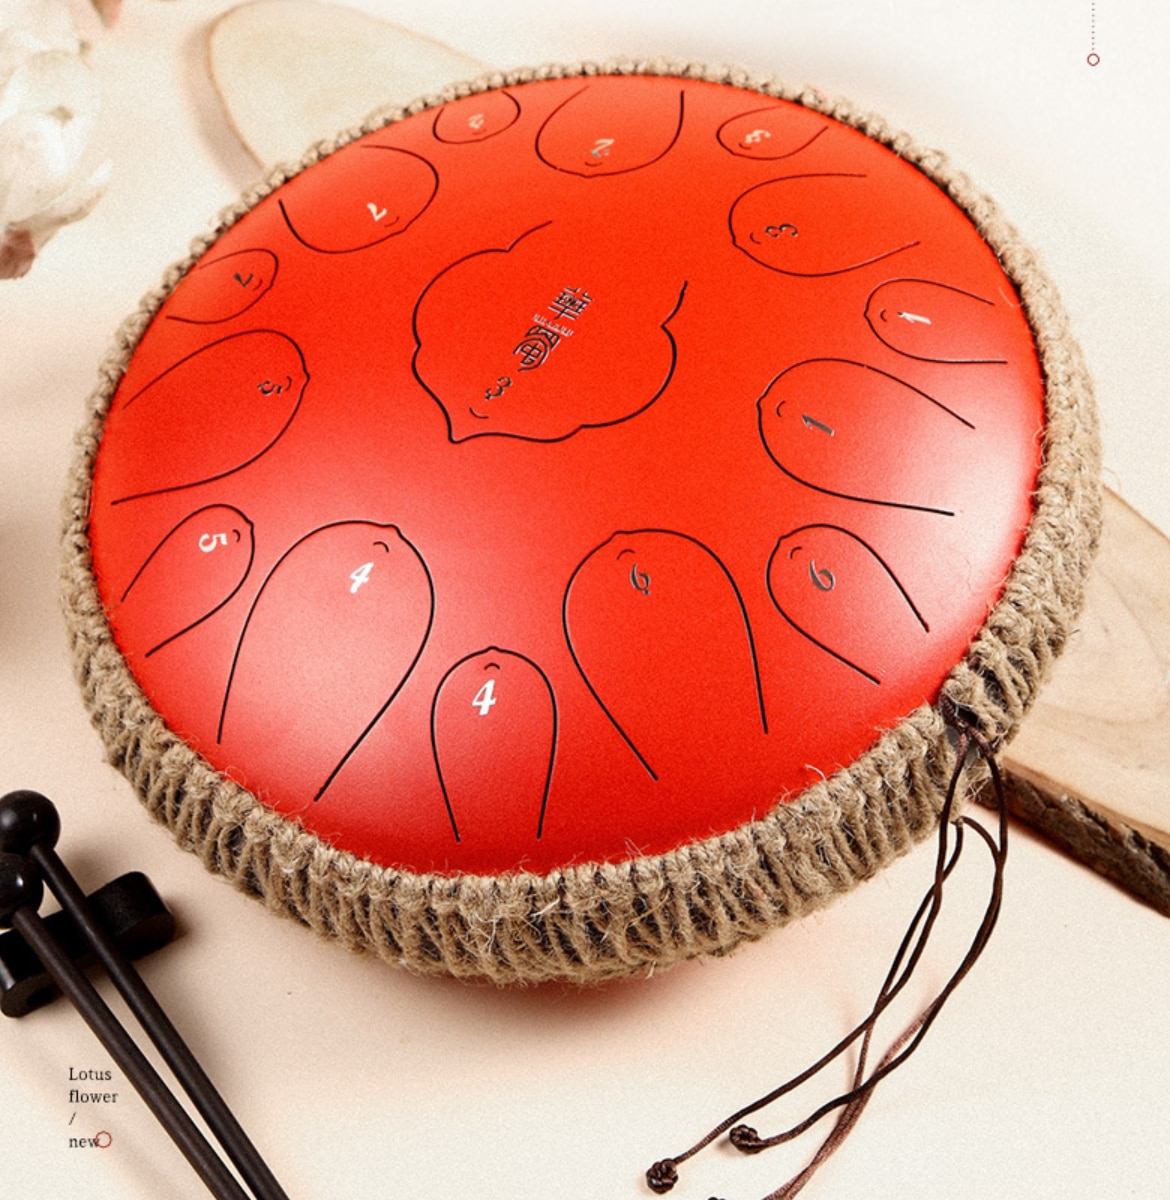 Steel Tongue Drum 15 Notes 13 Inch Harmonic Handpan Drum, Percussion Instrument, Tank Drum Chakra Drum for Meditation, Yoga and enlarge